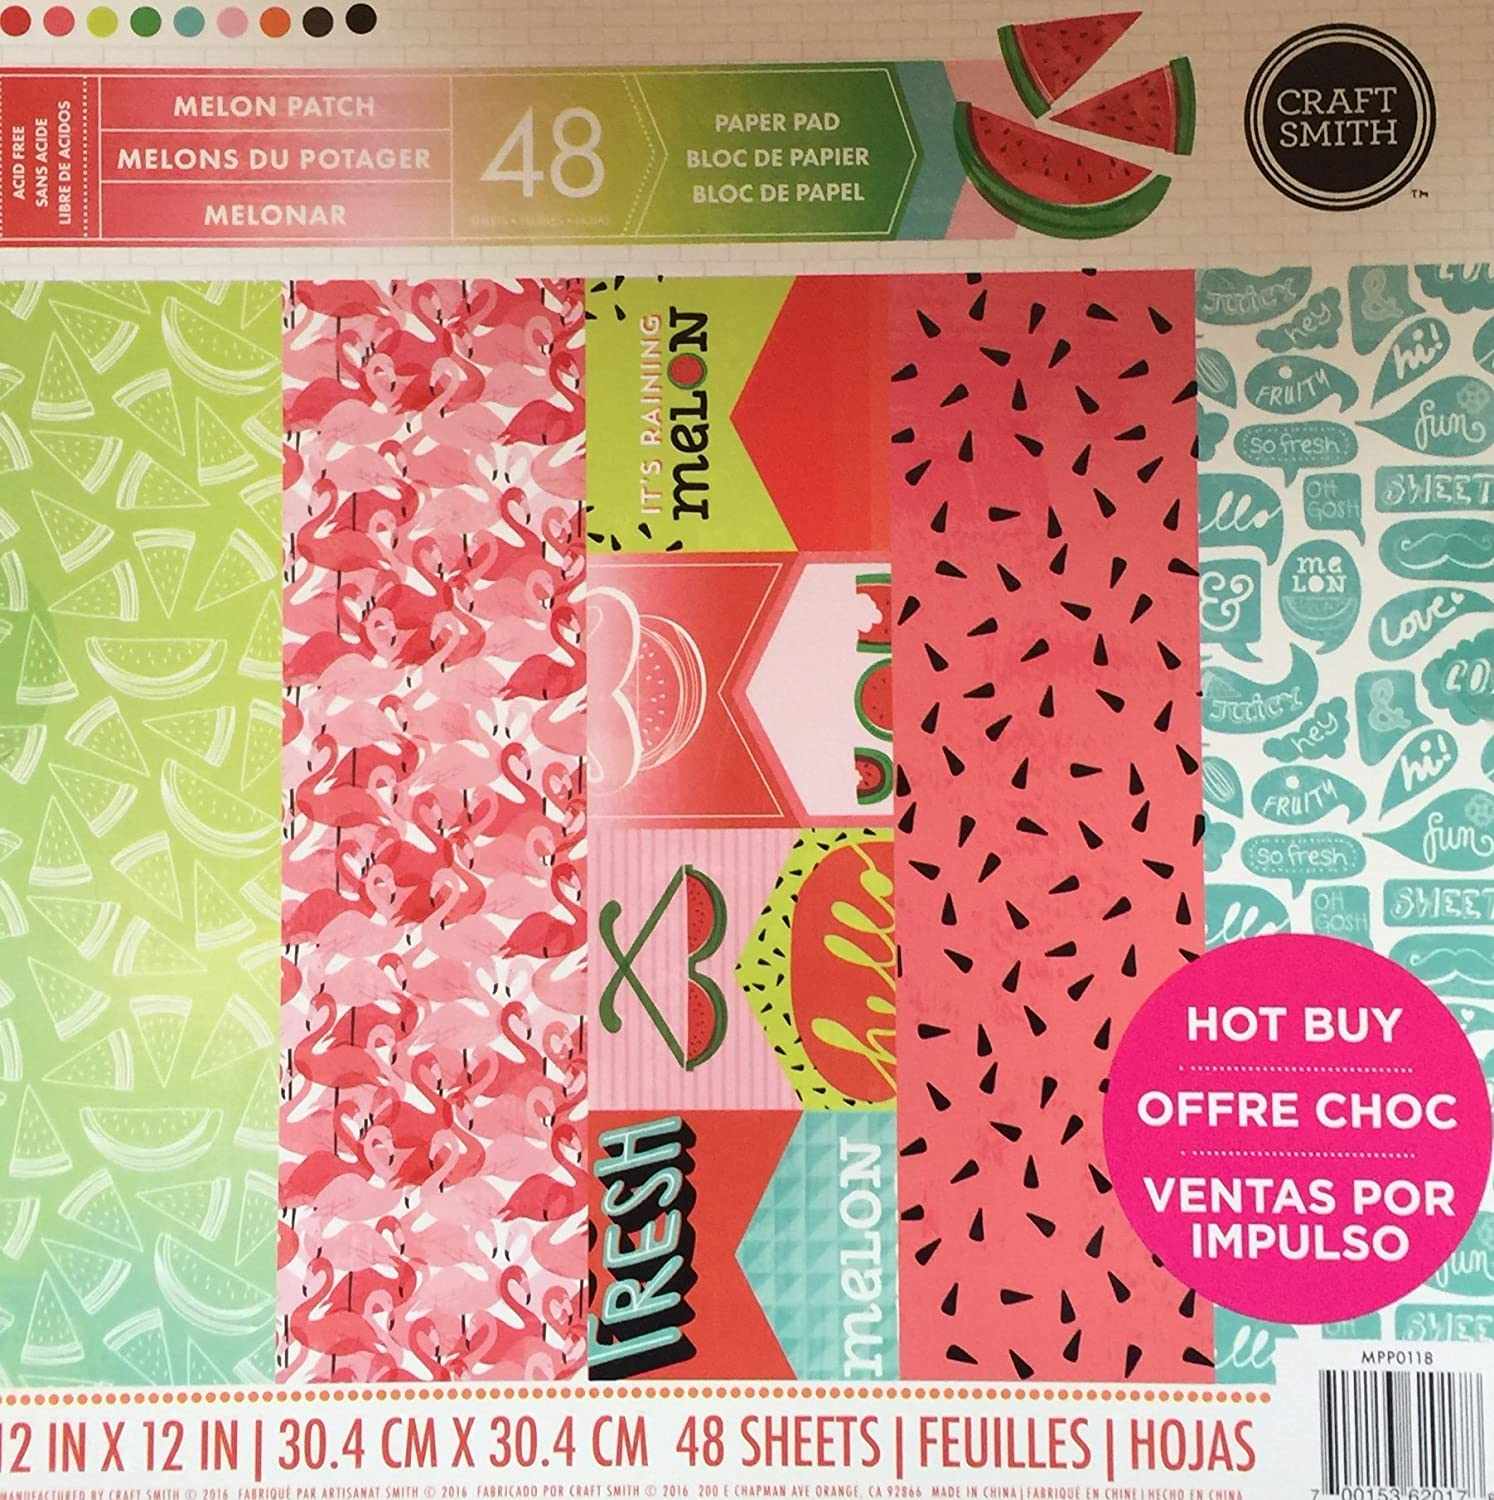 Craft Smith Paper Stack Melon Patch